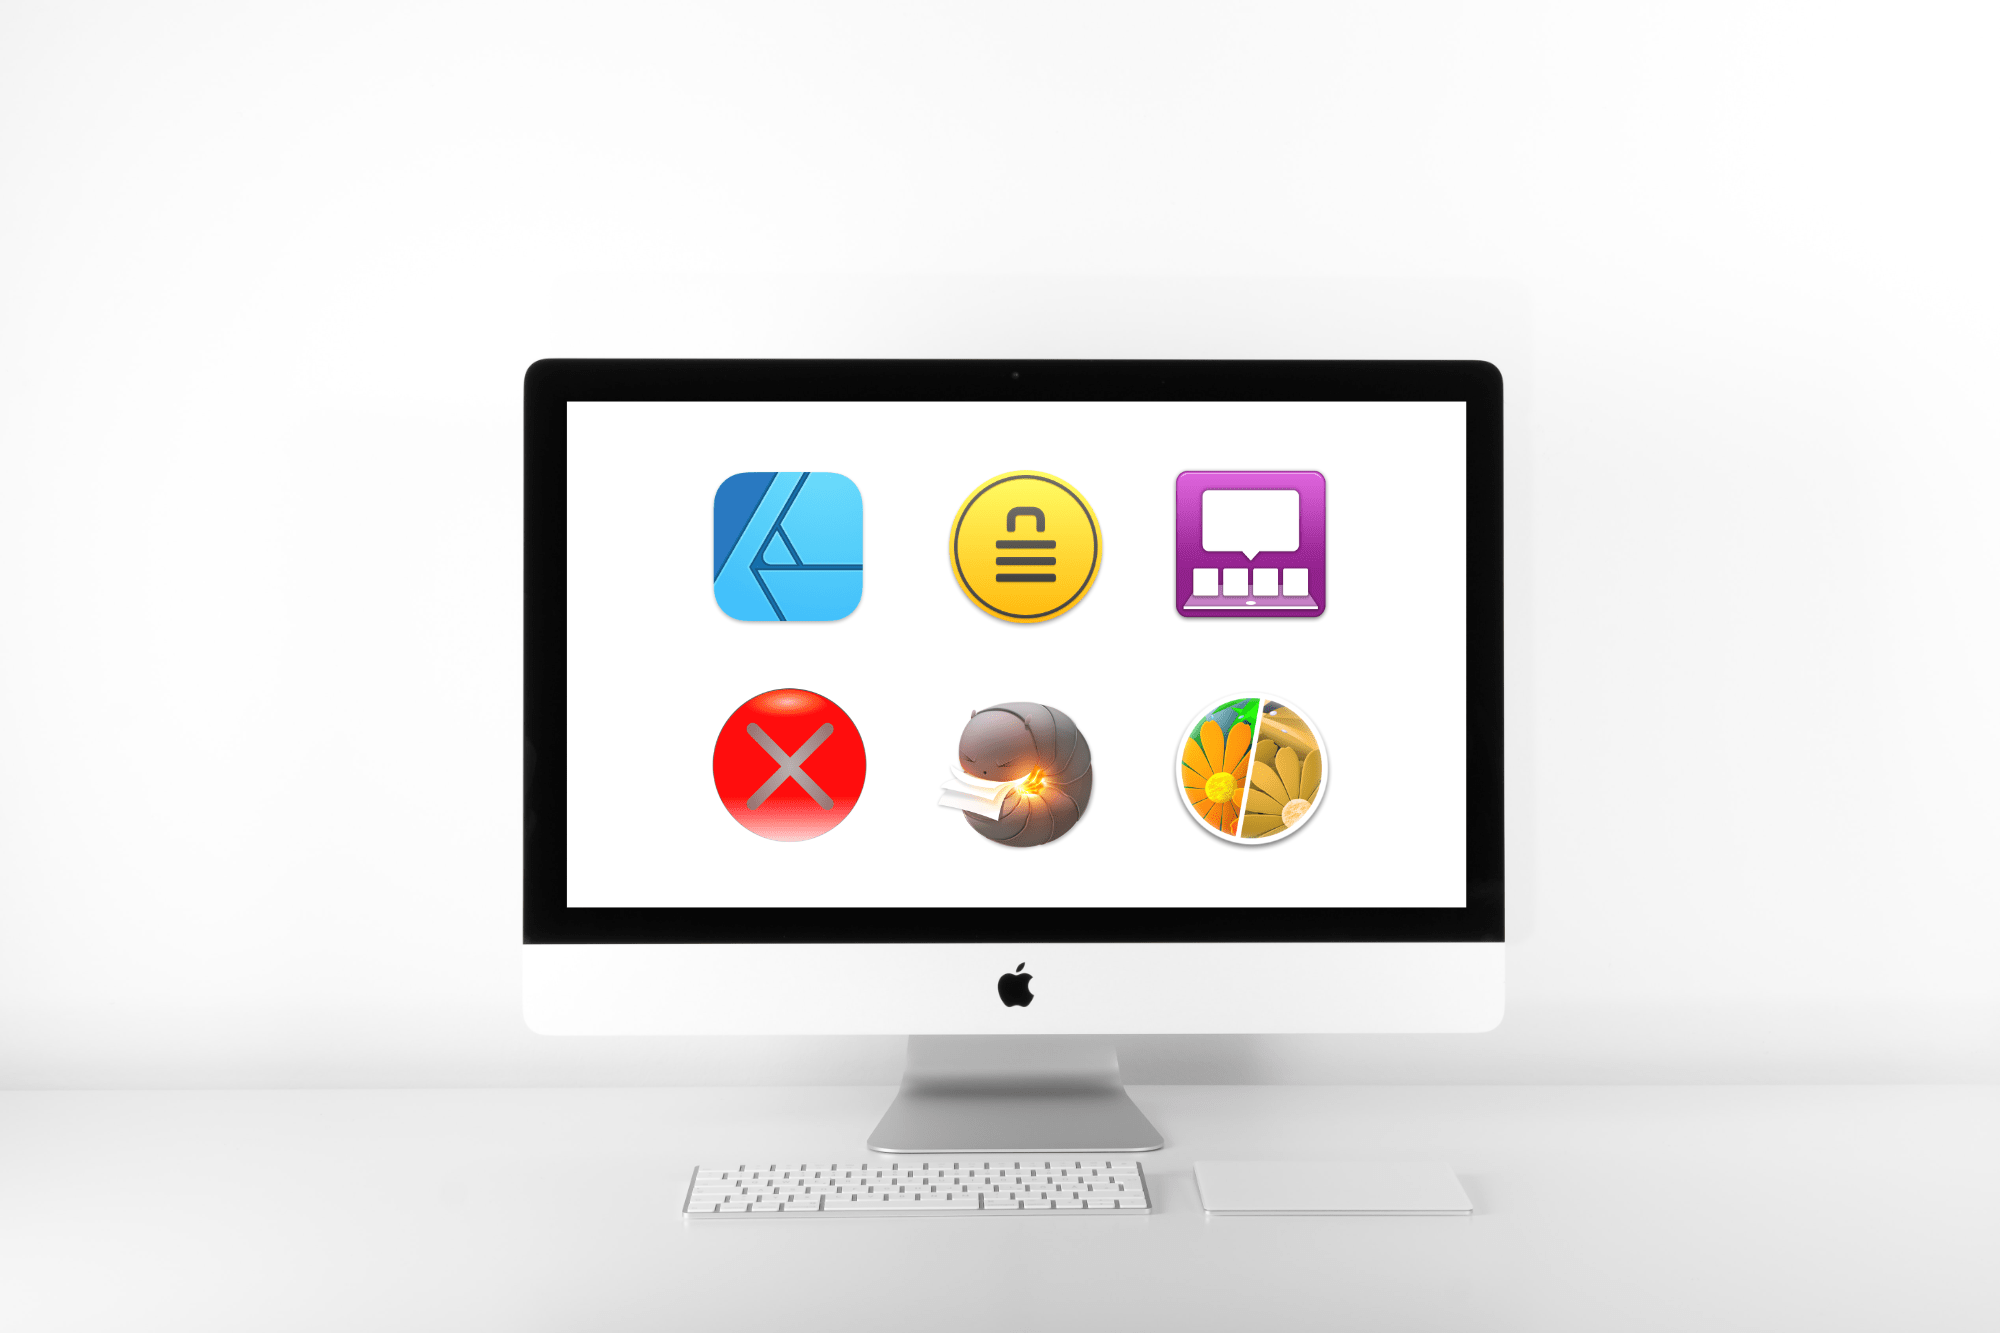 Mac monitor in white room with a white desktop displaying app icons featured in the associated article